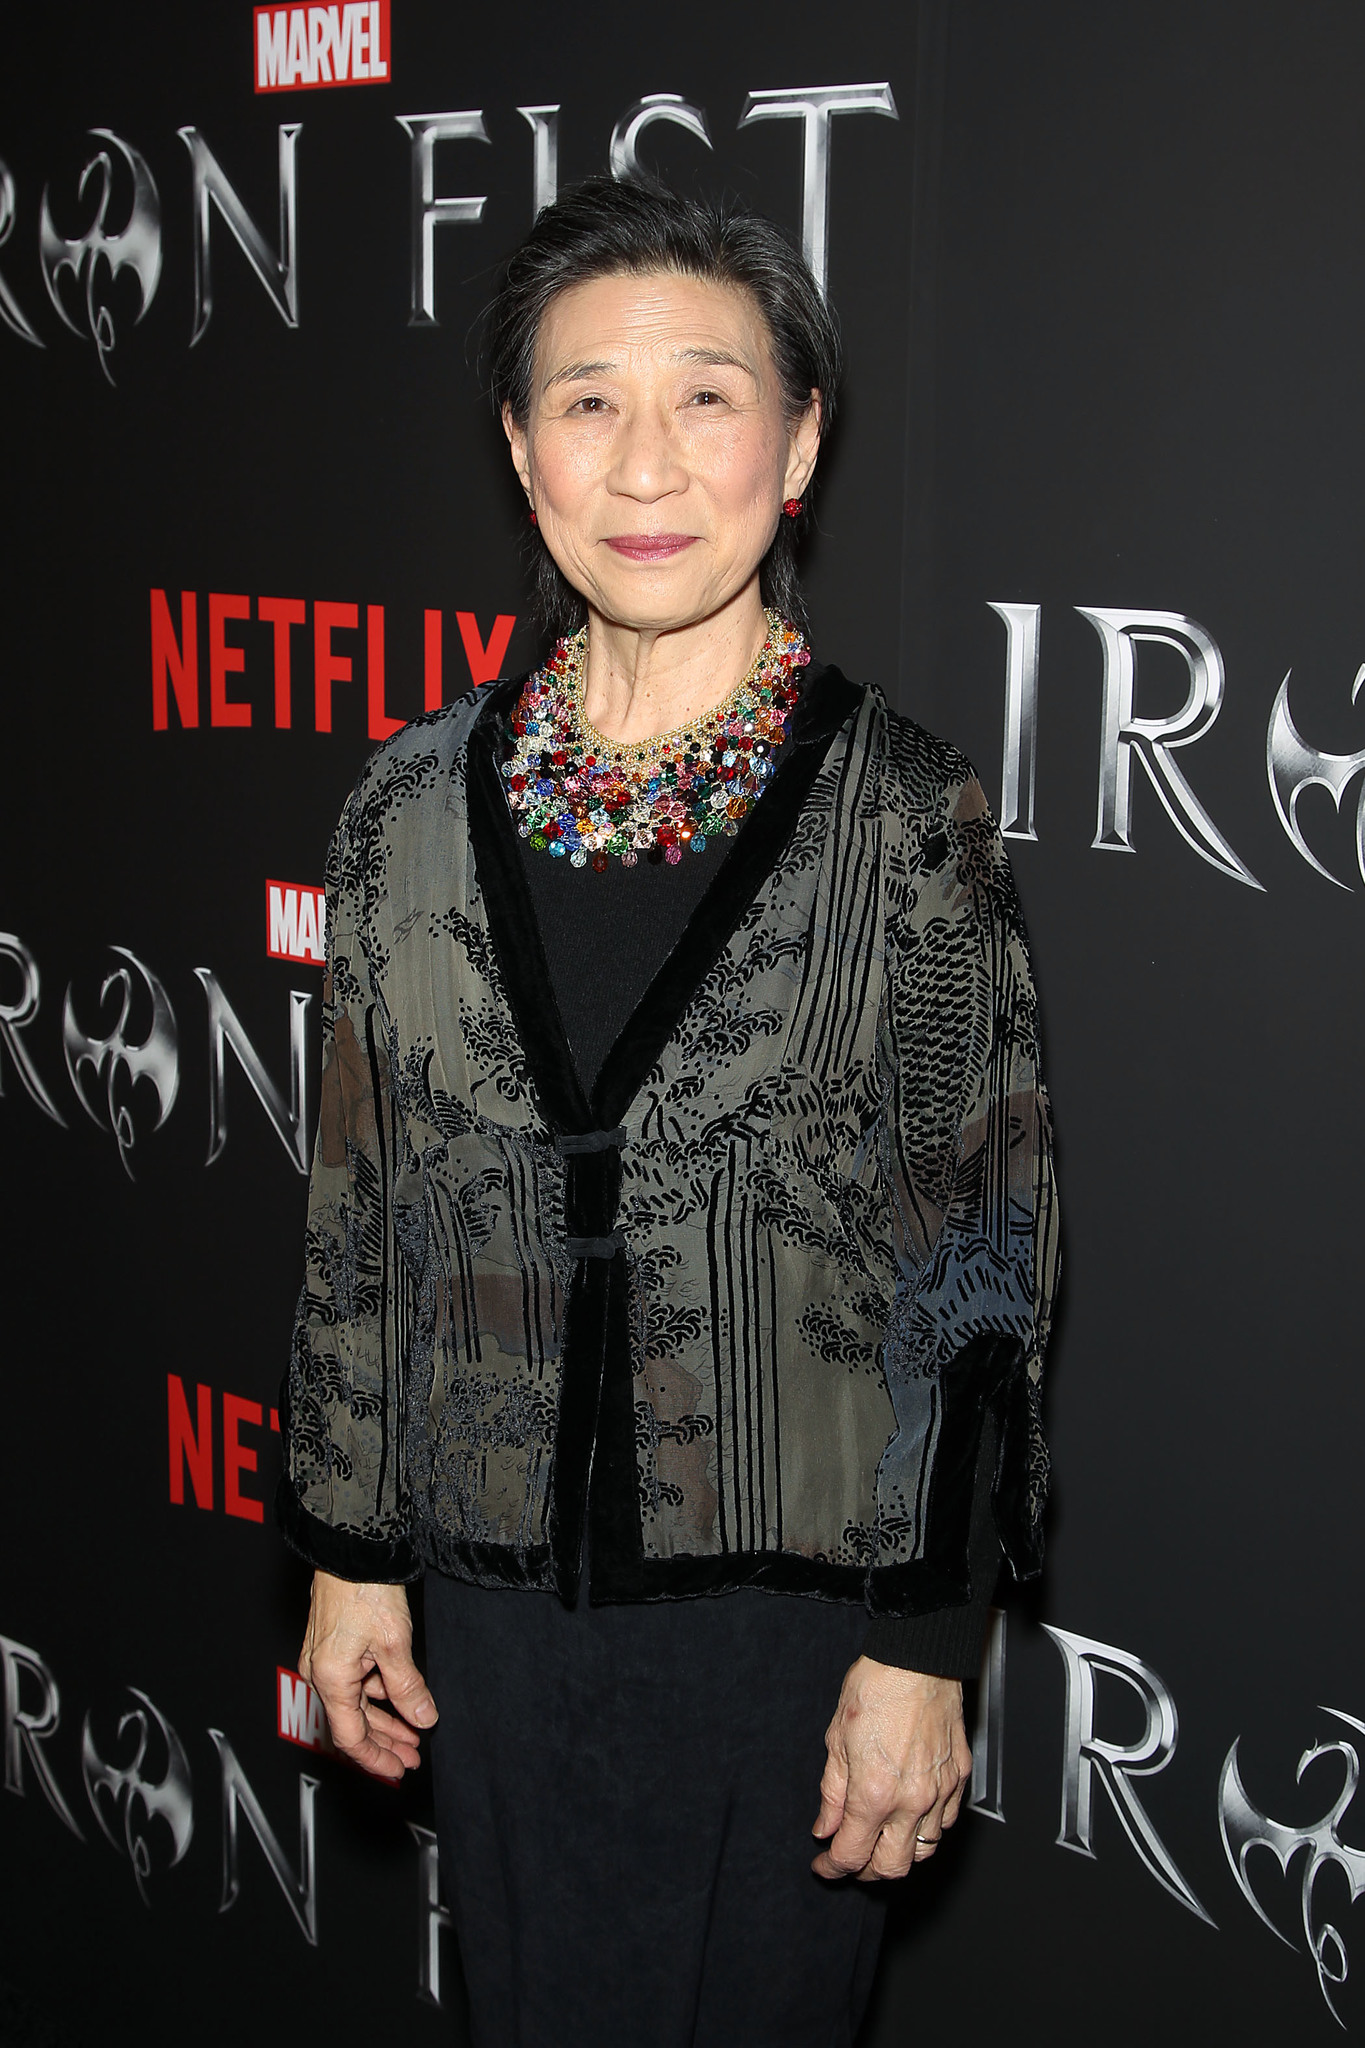 Wai Ching Ho at an event for Iron Fist (2017)